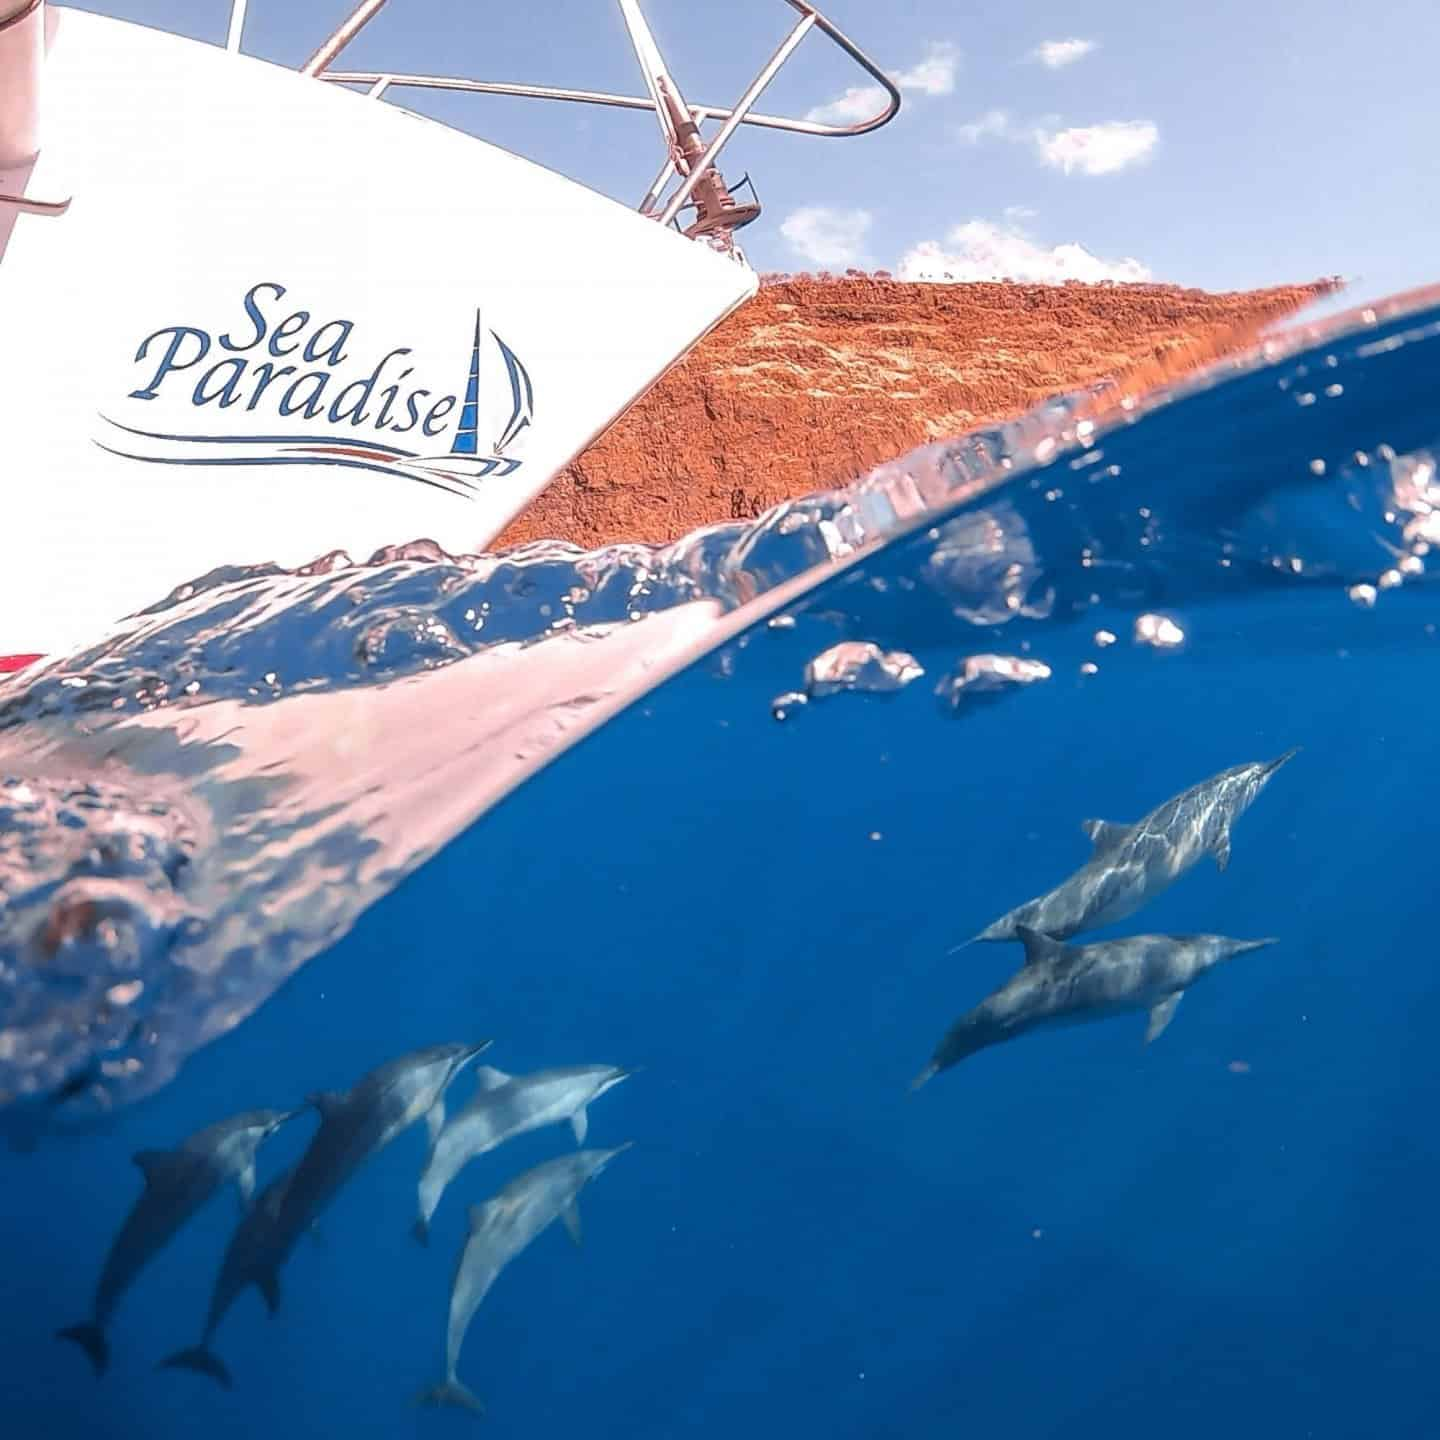 A pod of spinner dolphins swim under the Sea Paradise boat at Captain Cook Monument.